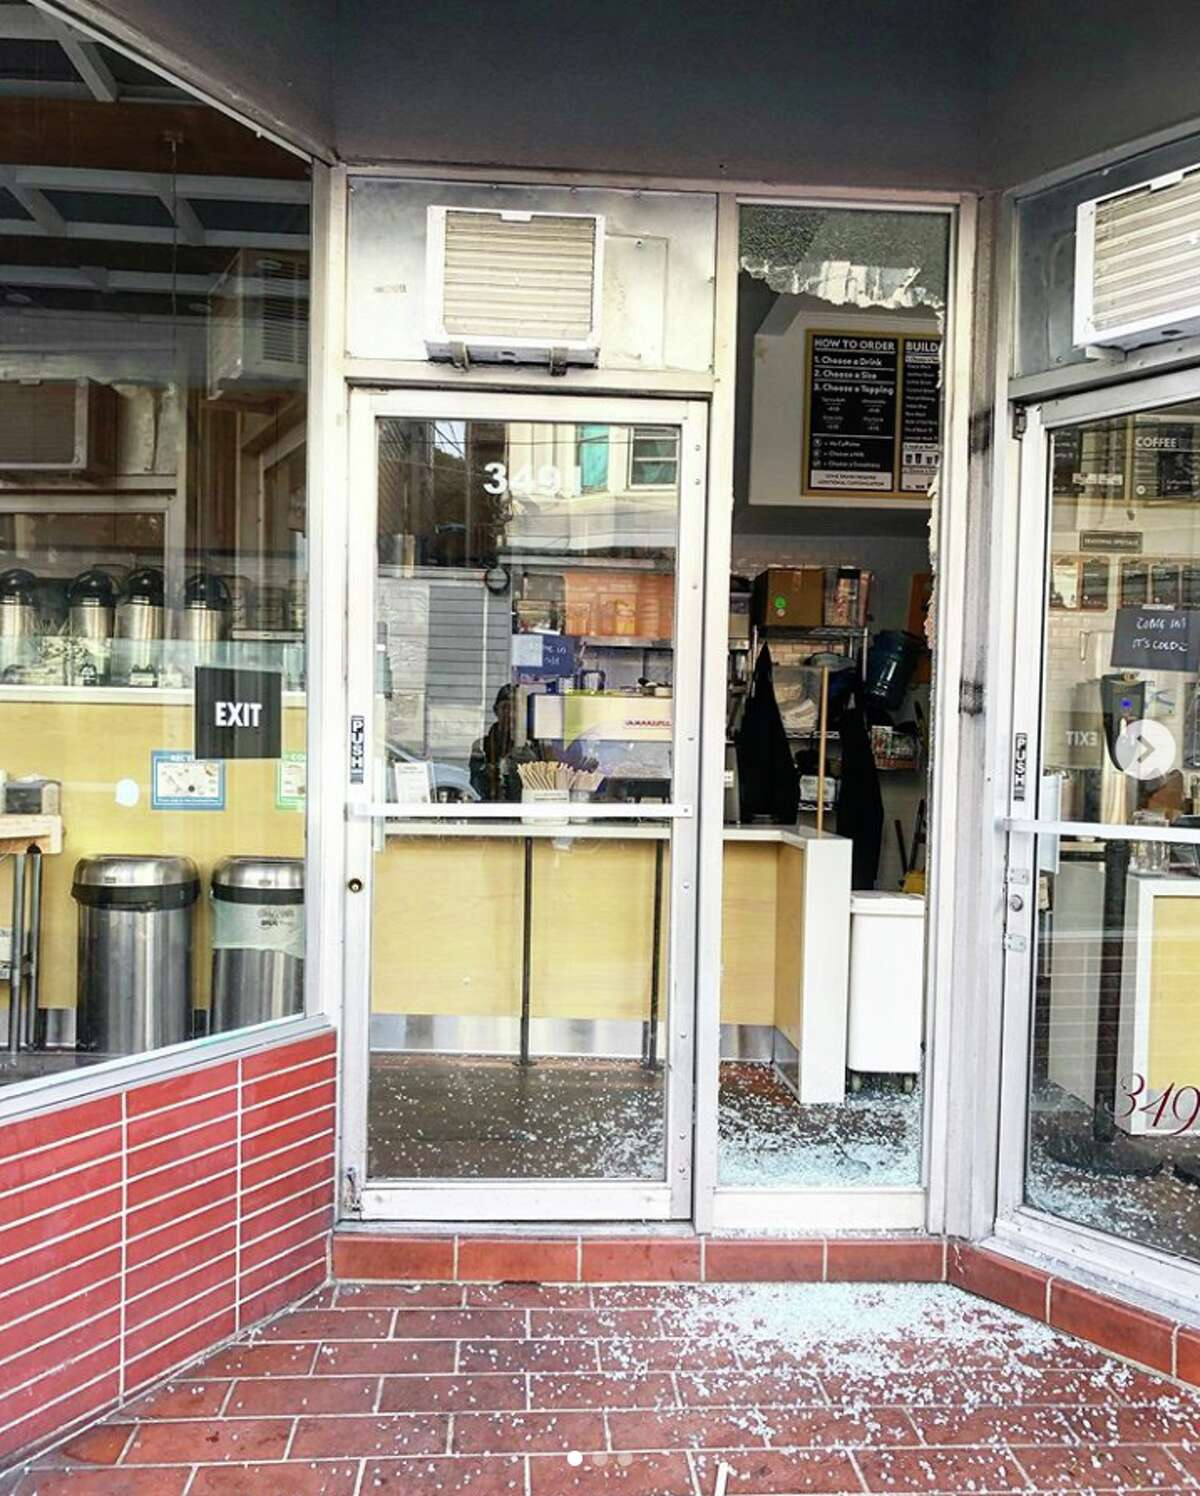 Boba Guys Mission was burglarized early Tuesday morning in what would be the third robbery for the tea room this year.